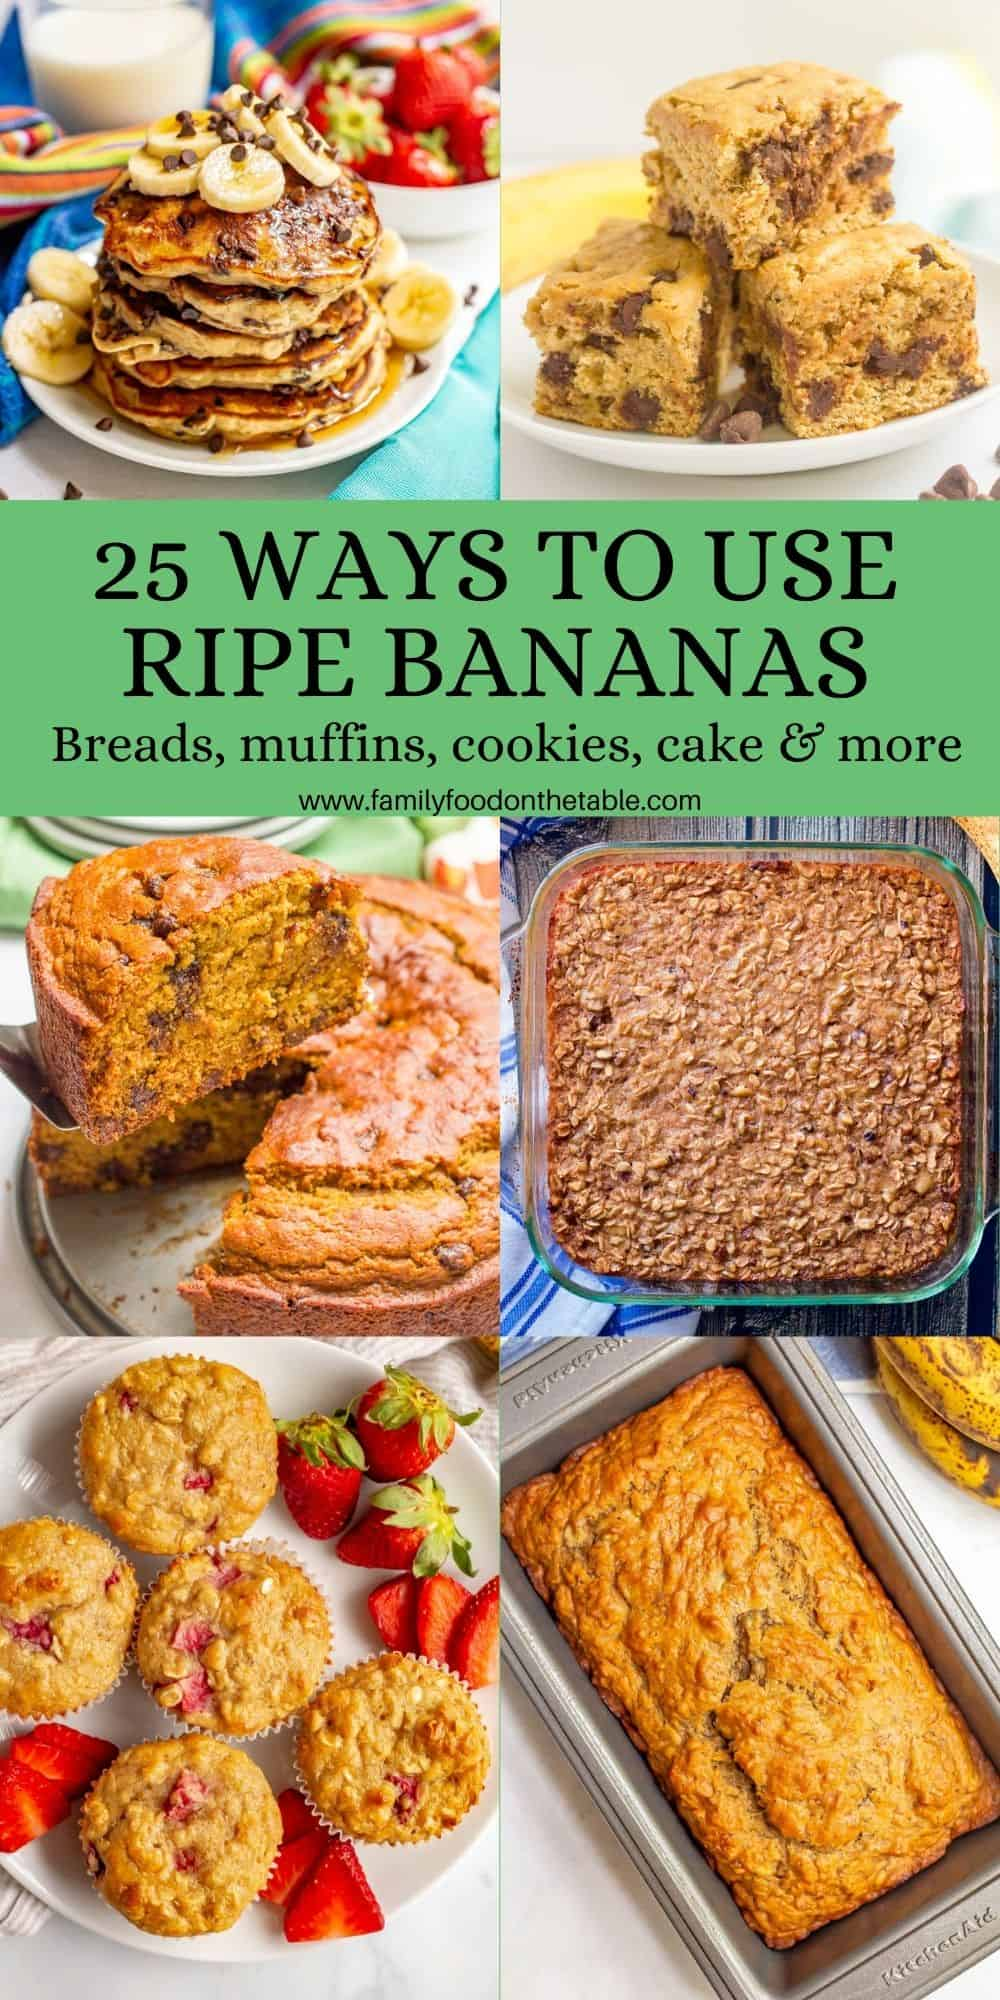 A collage of 6 photos of baked goods using ripe bananas with a text box in the middle